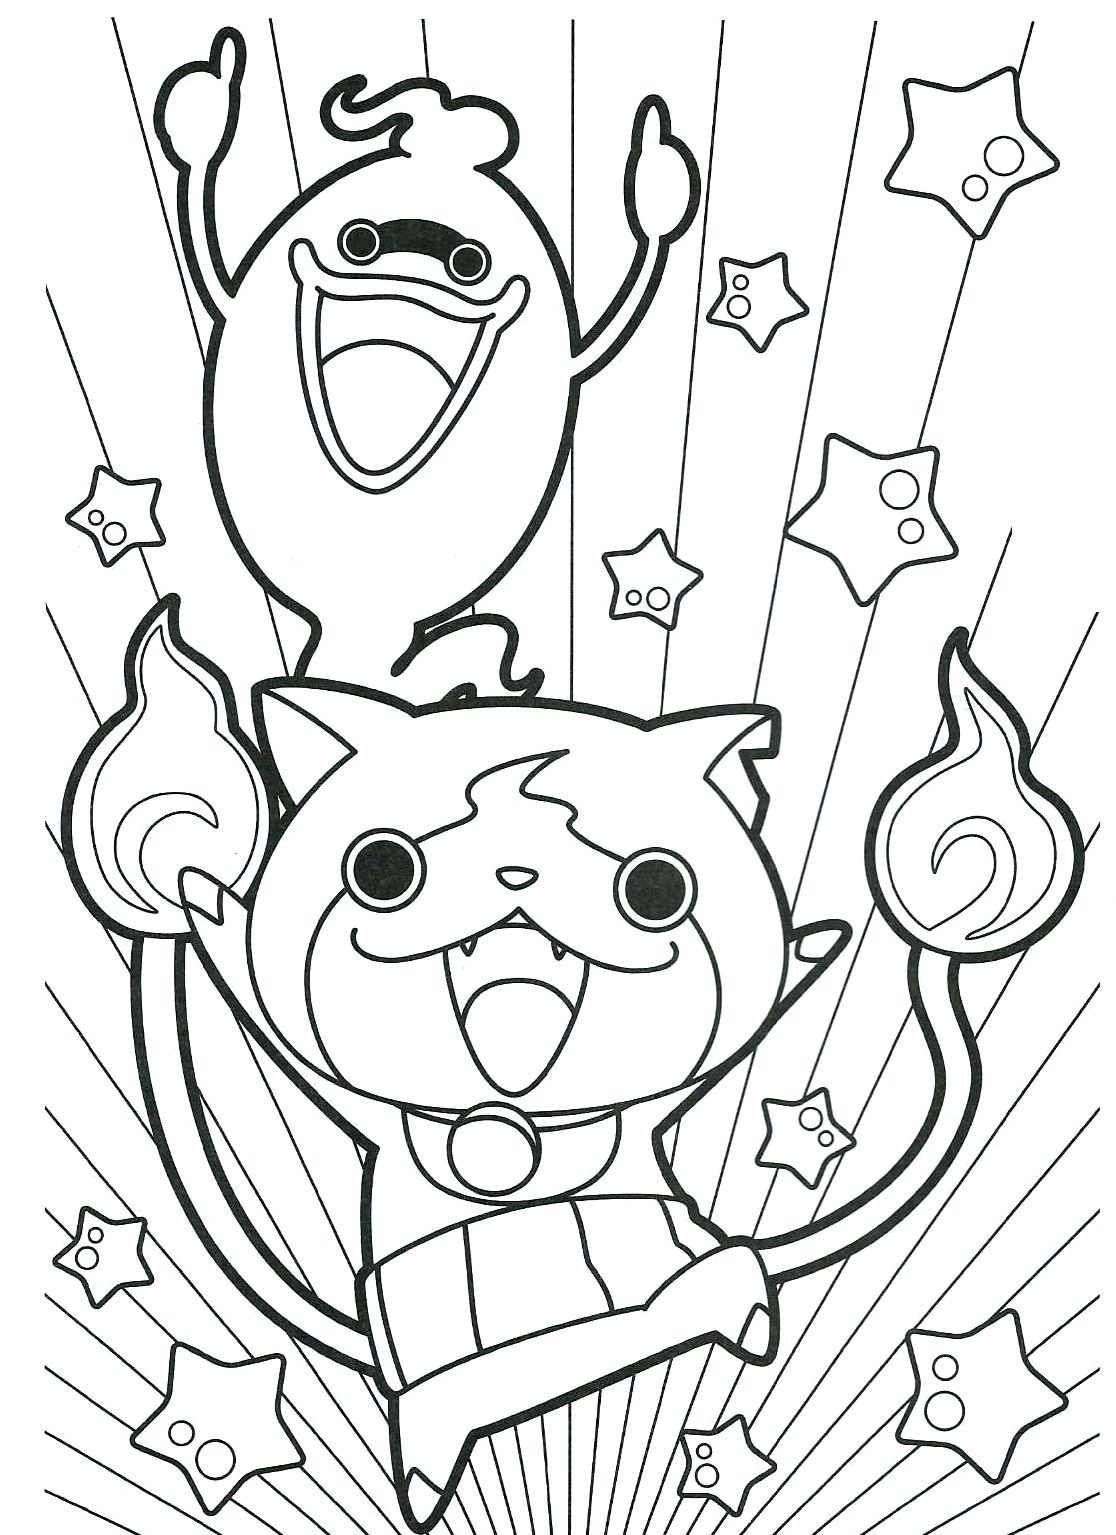 Coloriage Yo Ka¯ Watch Gratuits   Imprimer Yokaiwatch Coloringpage Printable Of Yo Kai Watch Coloring Pages Printable Collection